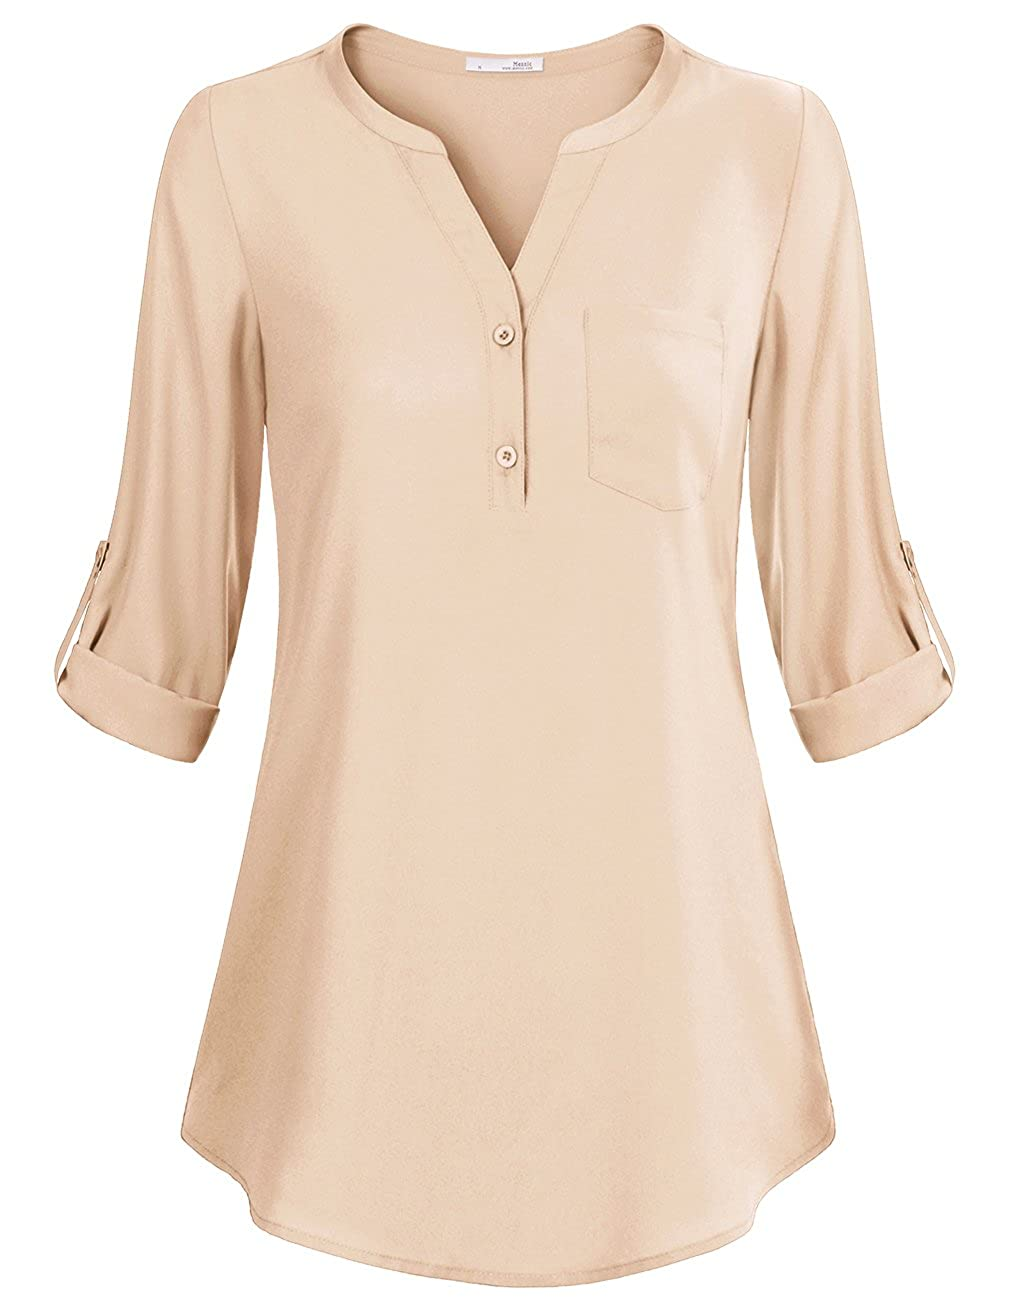 Wine Stained Blouse Clothing Reviews